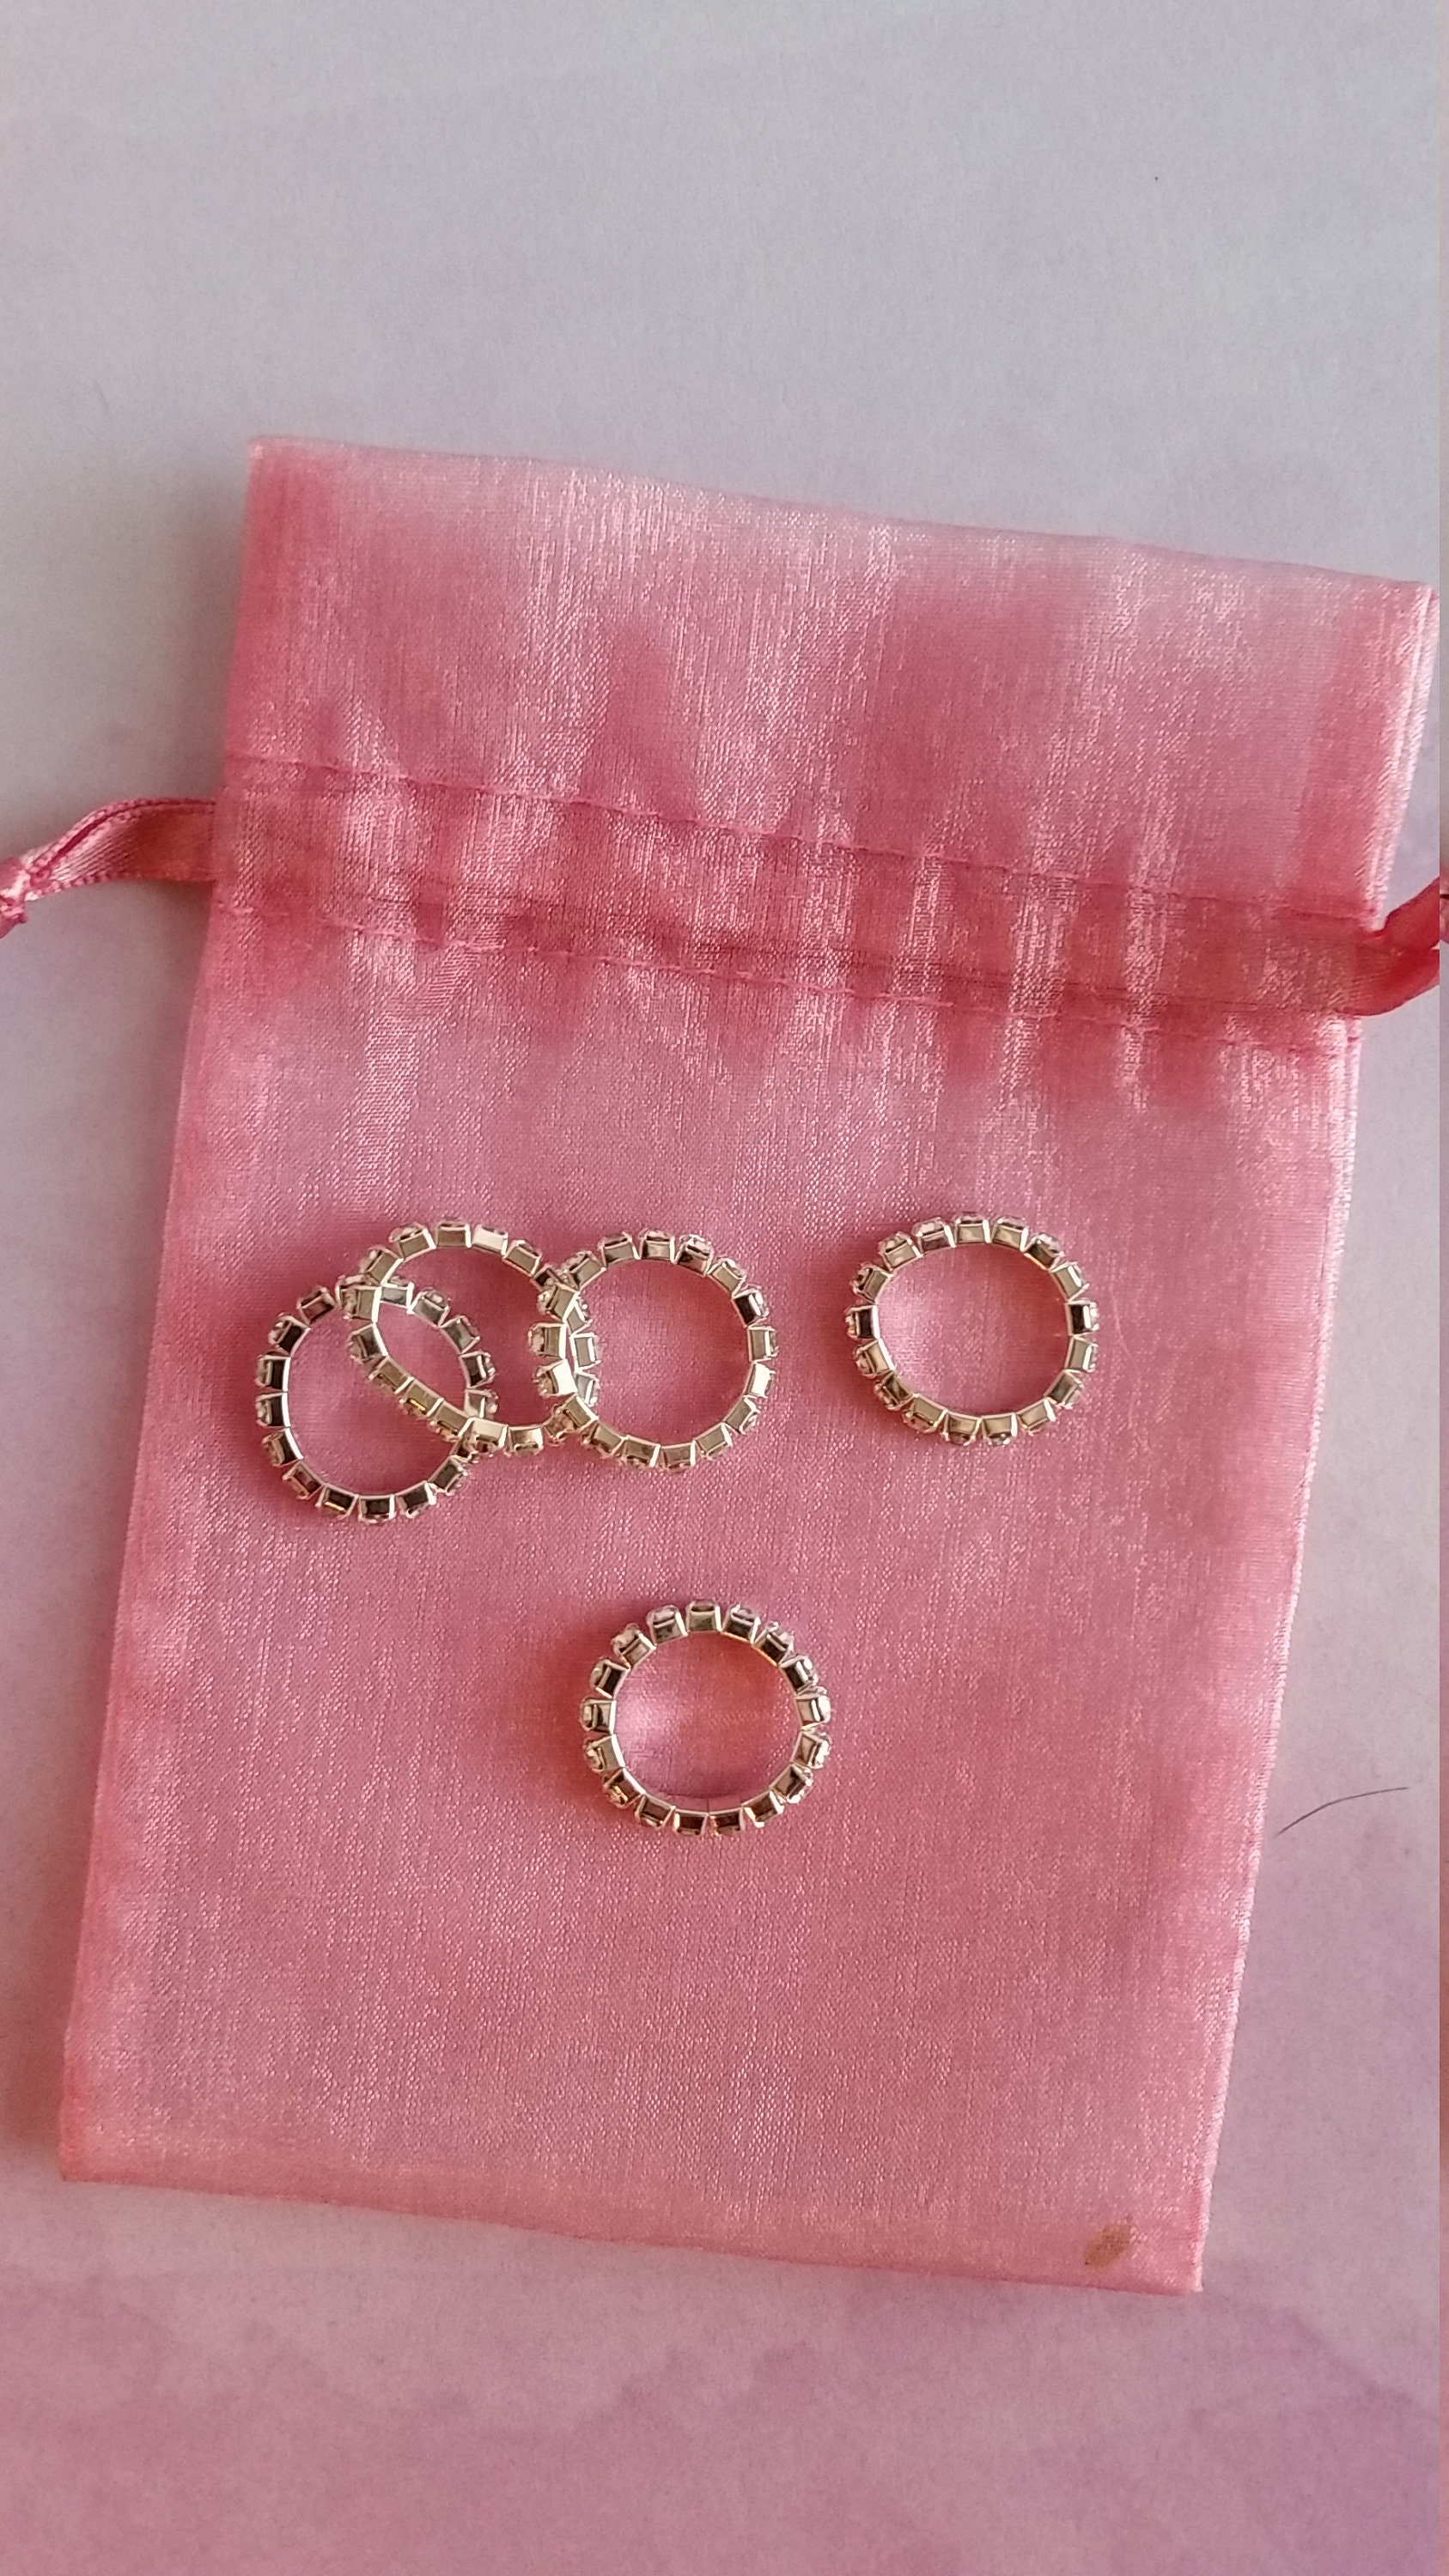 Toe rings & matching Ankle Bracelet/Body Jewelry   Etsy